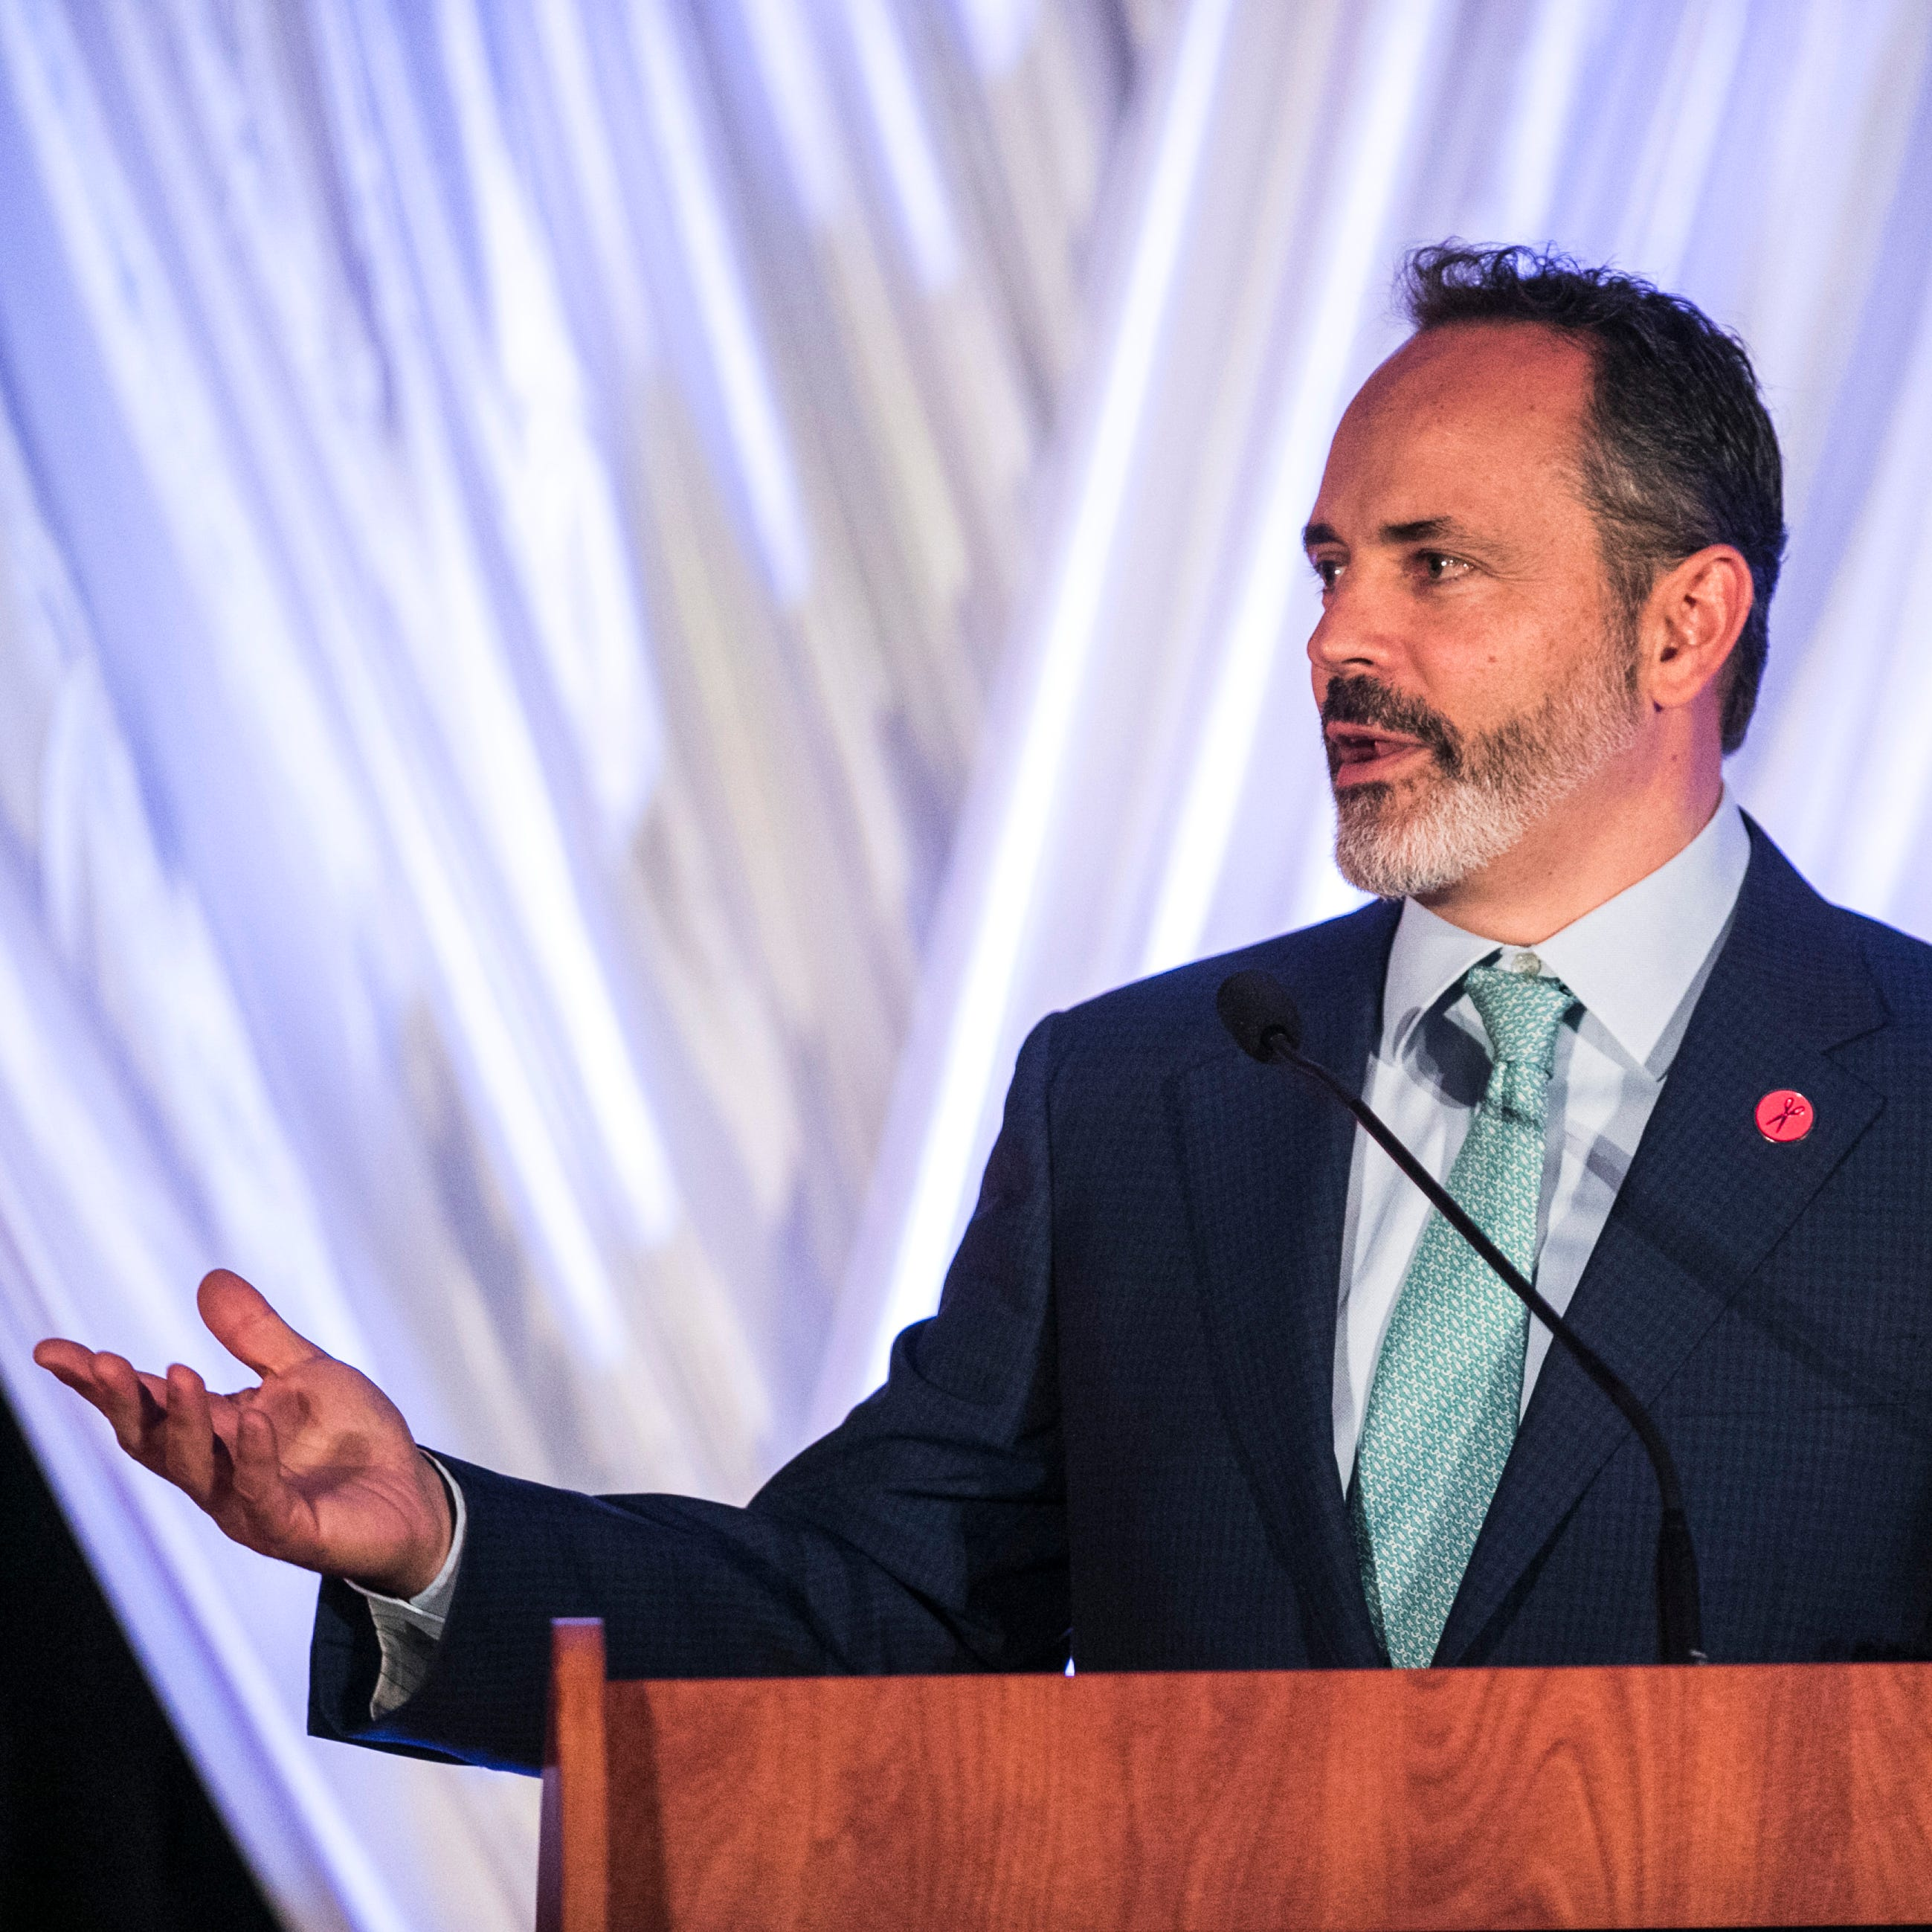 How Gov. Bevin gave one employee a $215K raise: What you should know